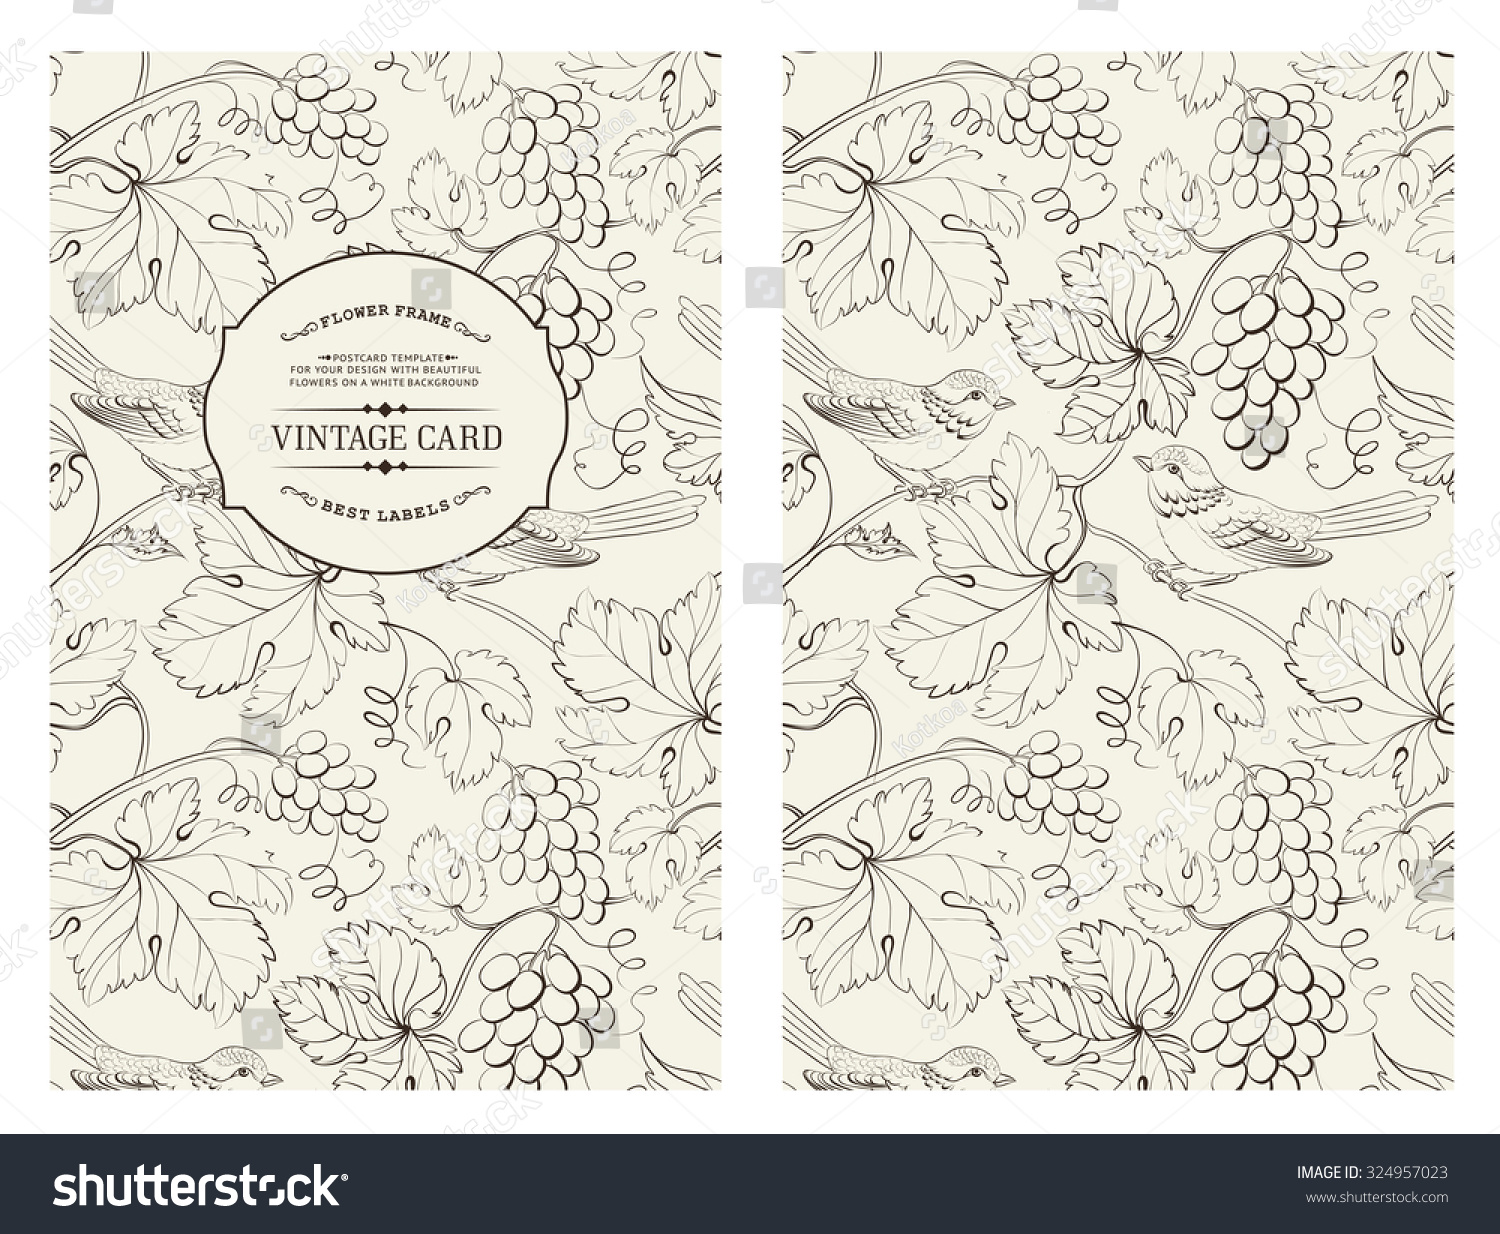 Book Cover Design Tumblr ~ Book cover design grape wine card vintage pattern of